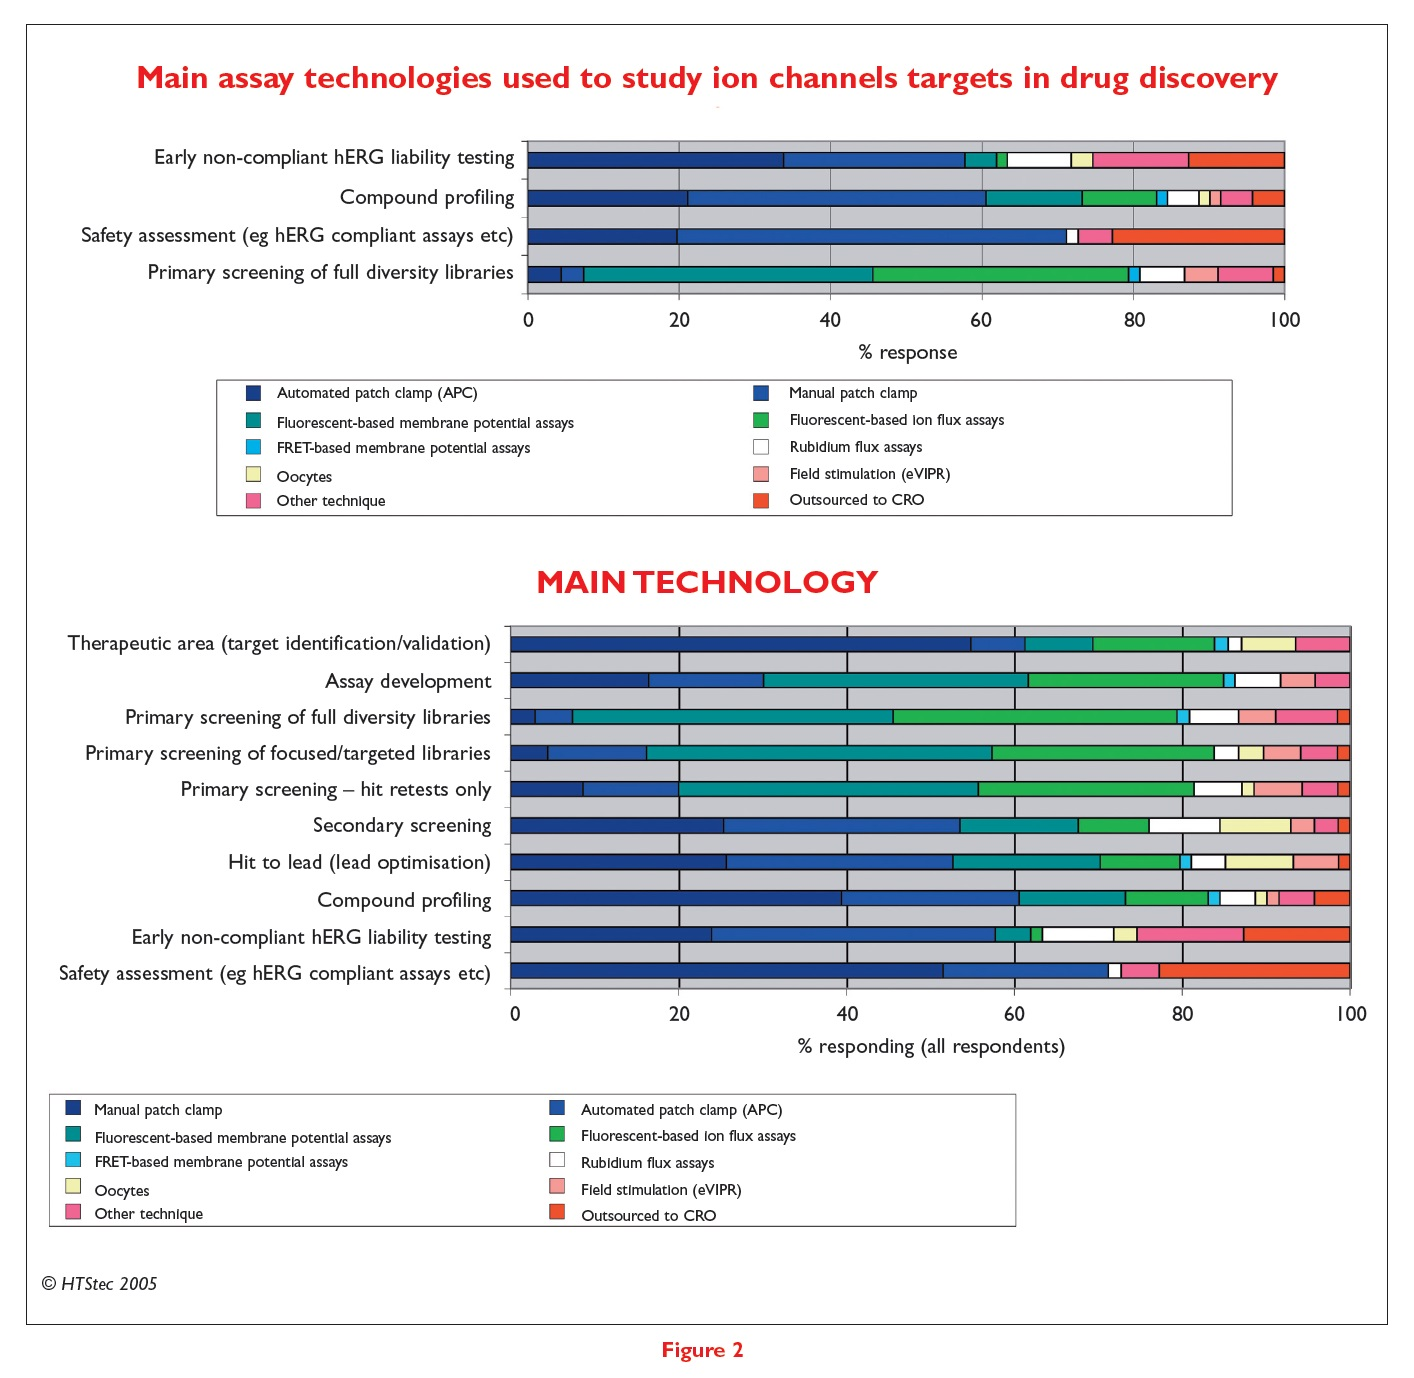 Figure 2 Main assay technologies used to study ion channels targets in drug discovery